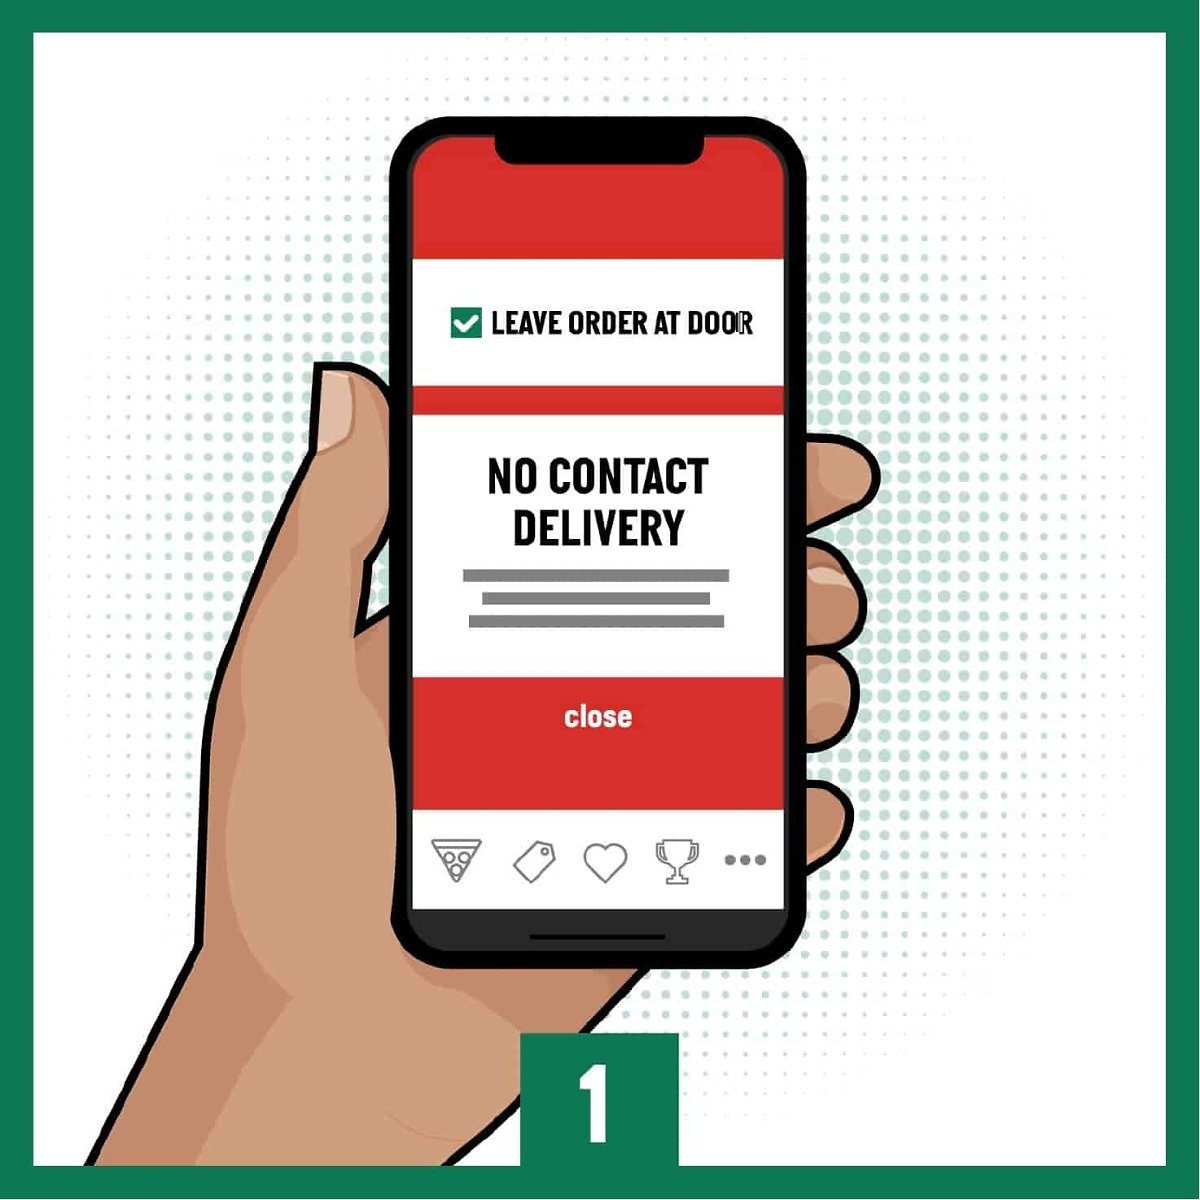 No Contact Delivery from Papa John's